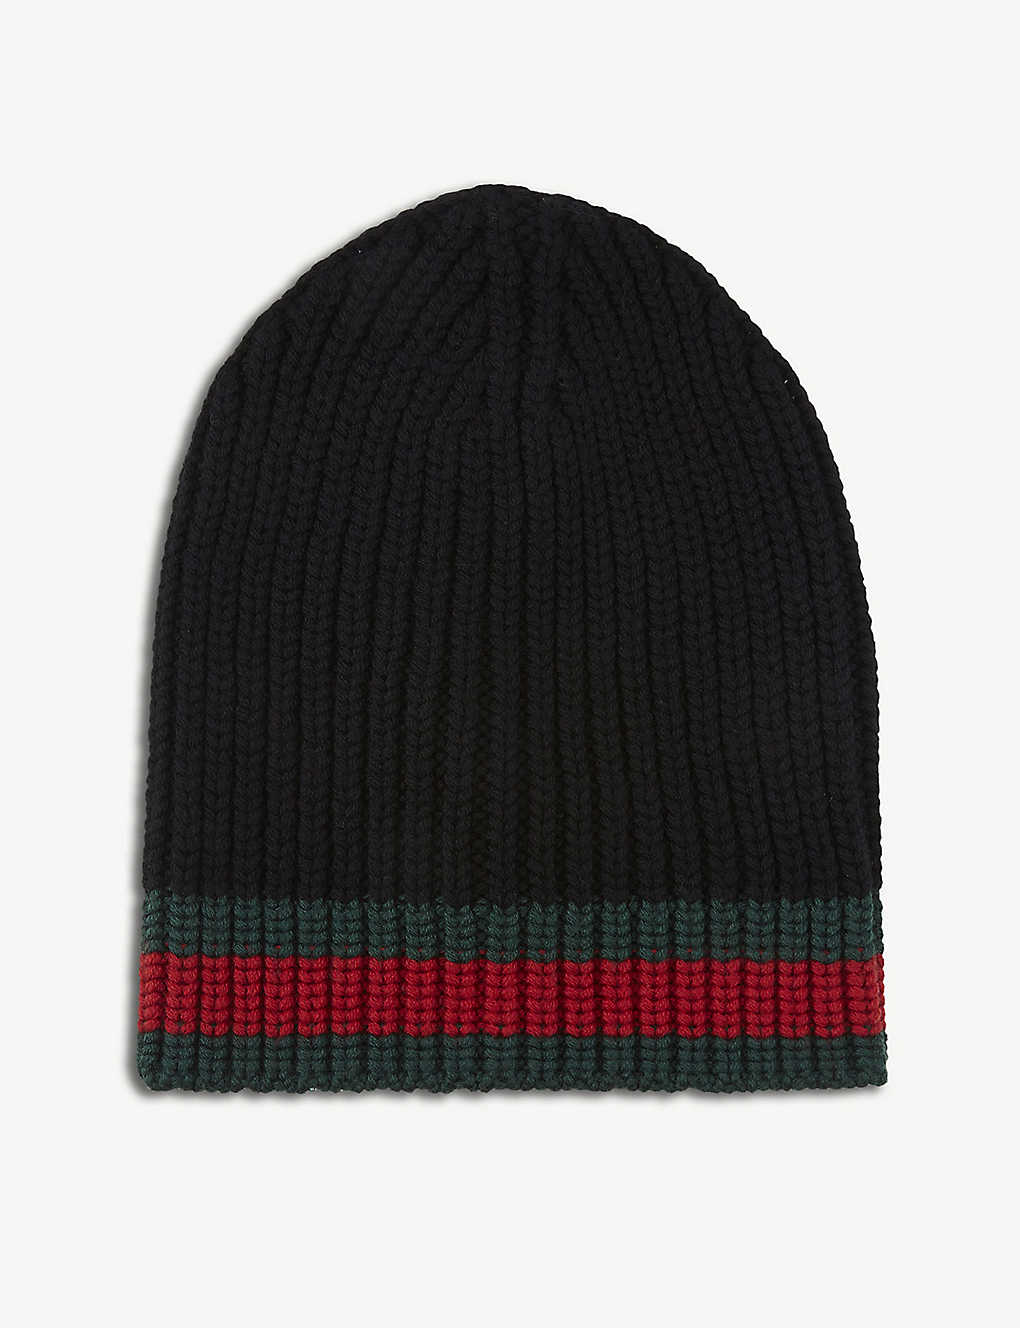 GUCCI - Striped knitted wool beanie  88fc3496bc1